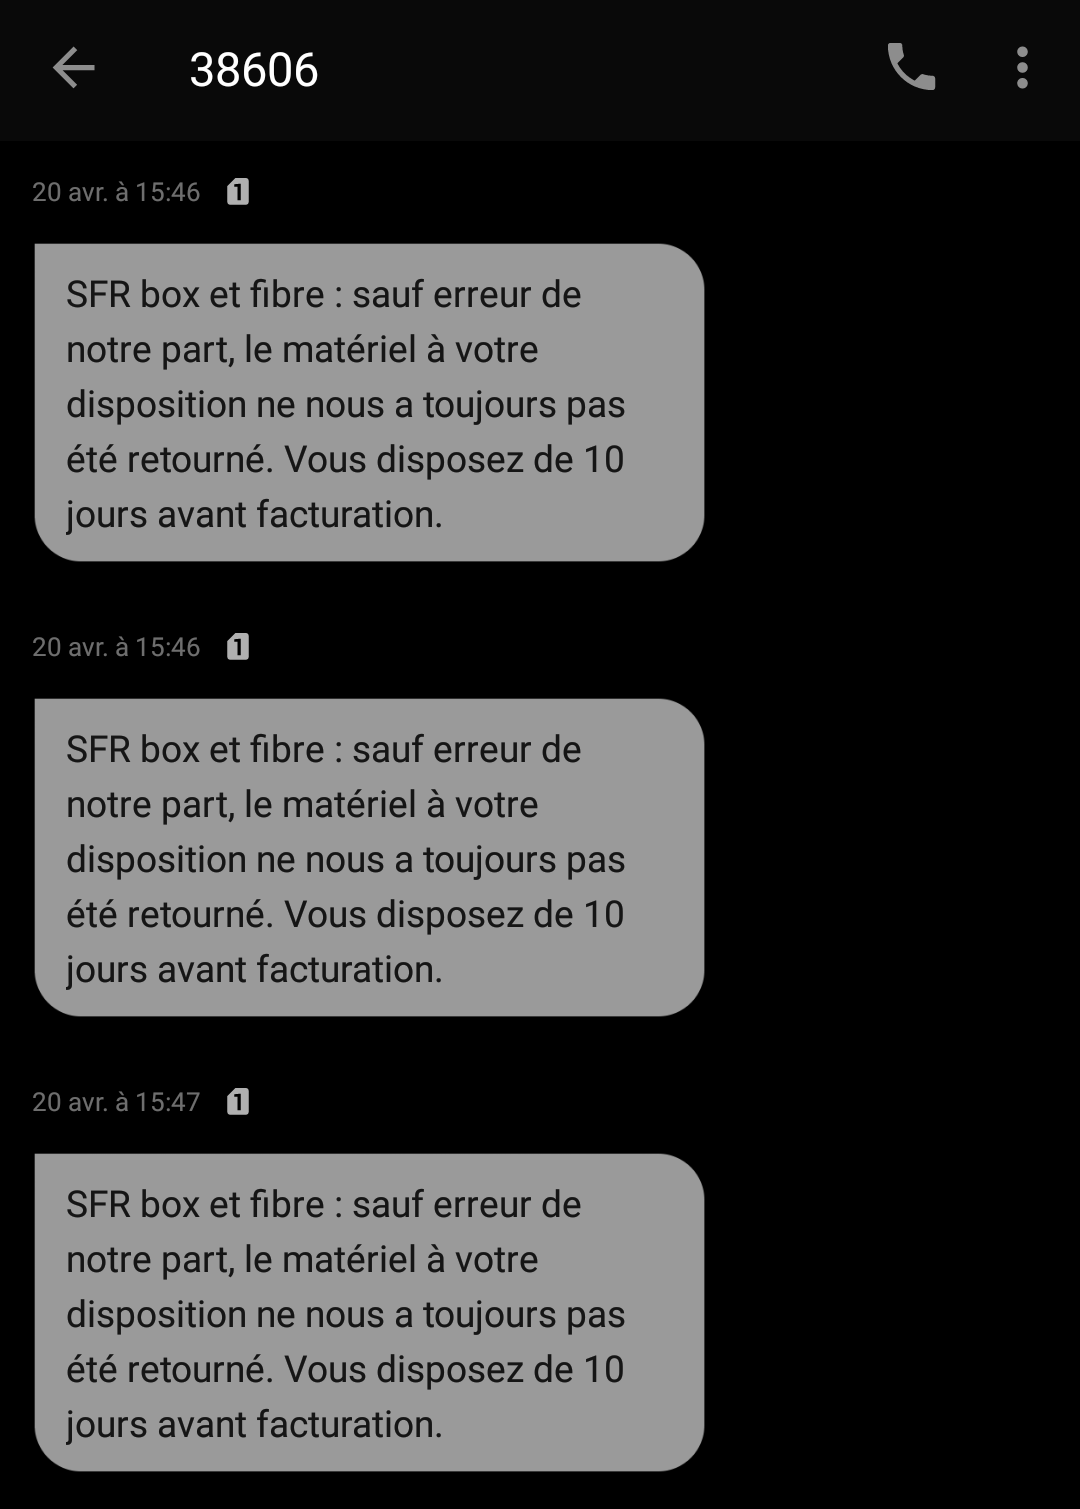 spam_sms.png